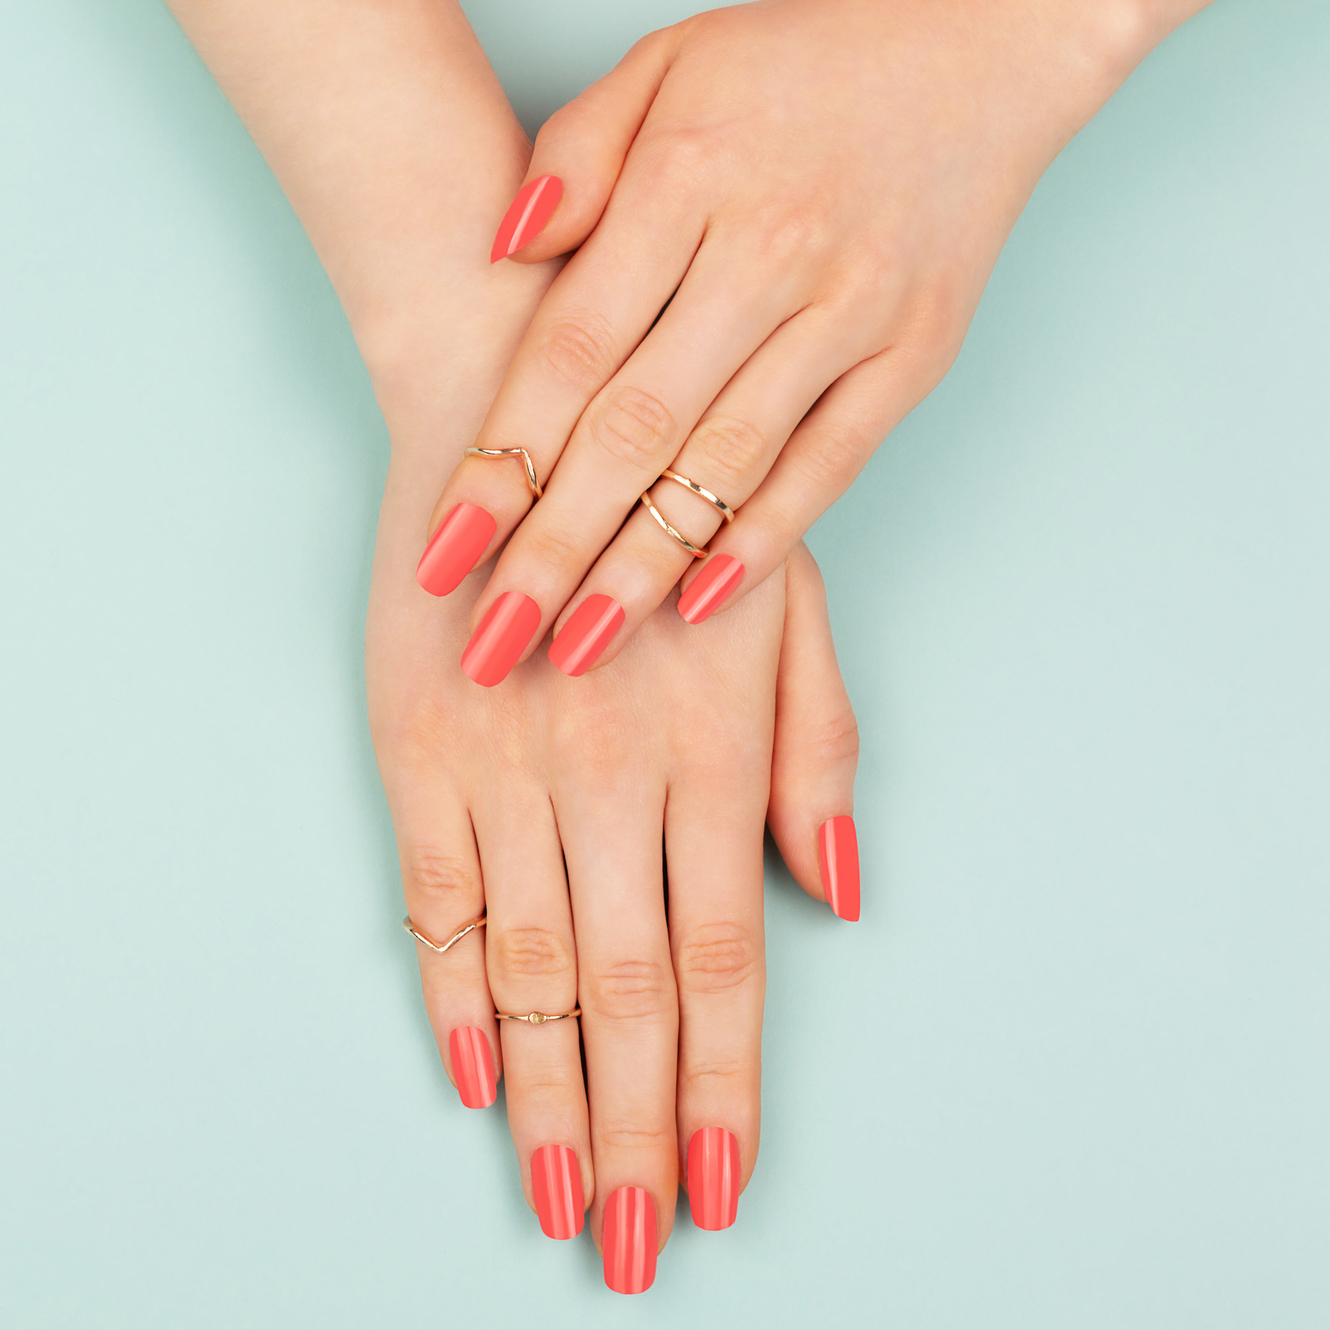 Manicure, pedicure and gel nail treatments at Sutherlands Hair and Beauty